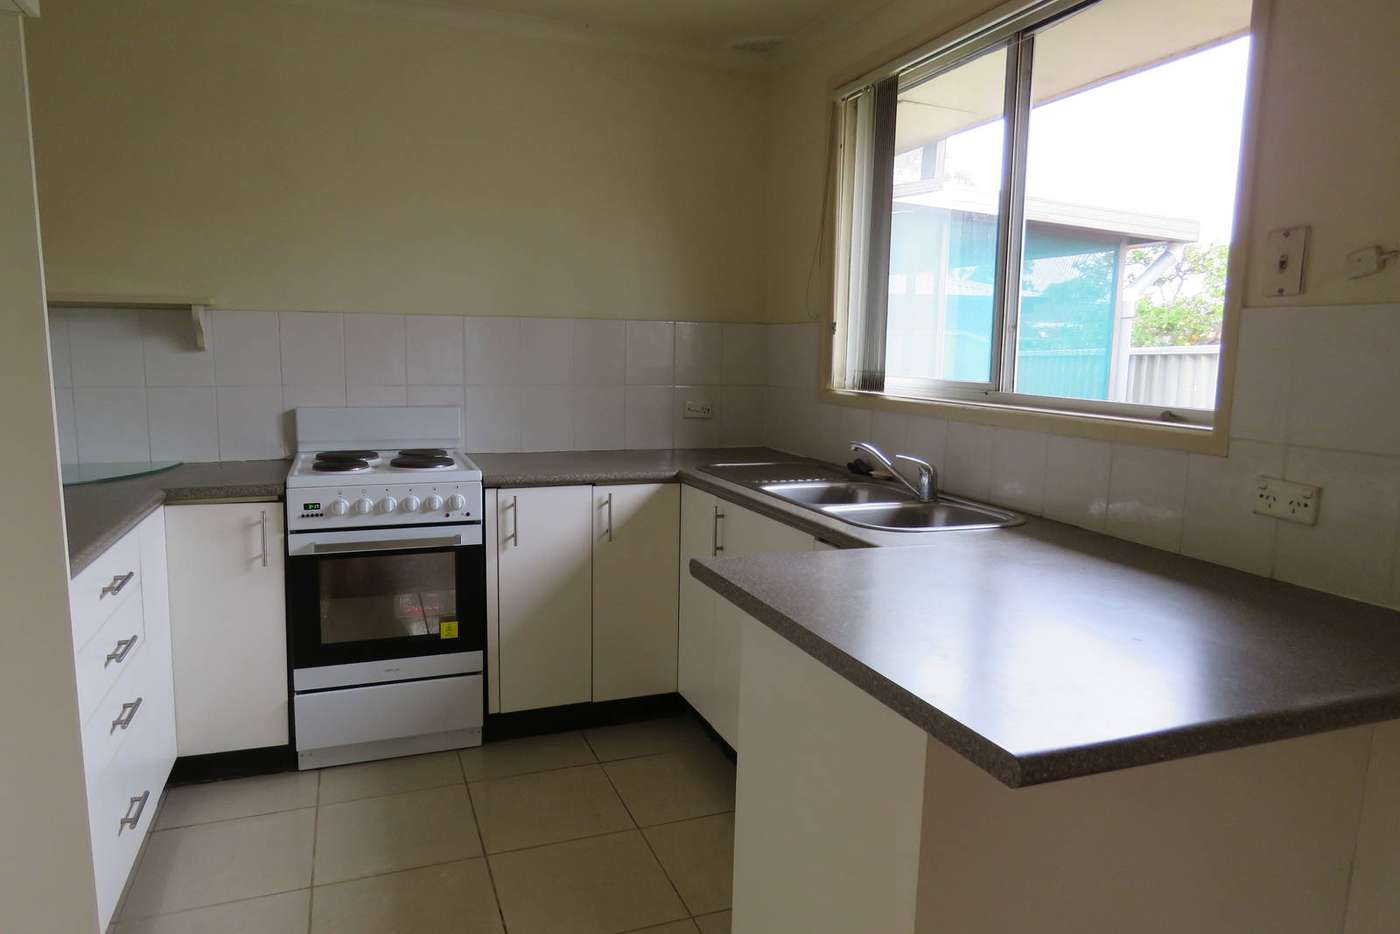 Main view of Homely house listing, 10 McCartney Crescent, St Clair NSW 2759